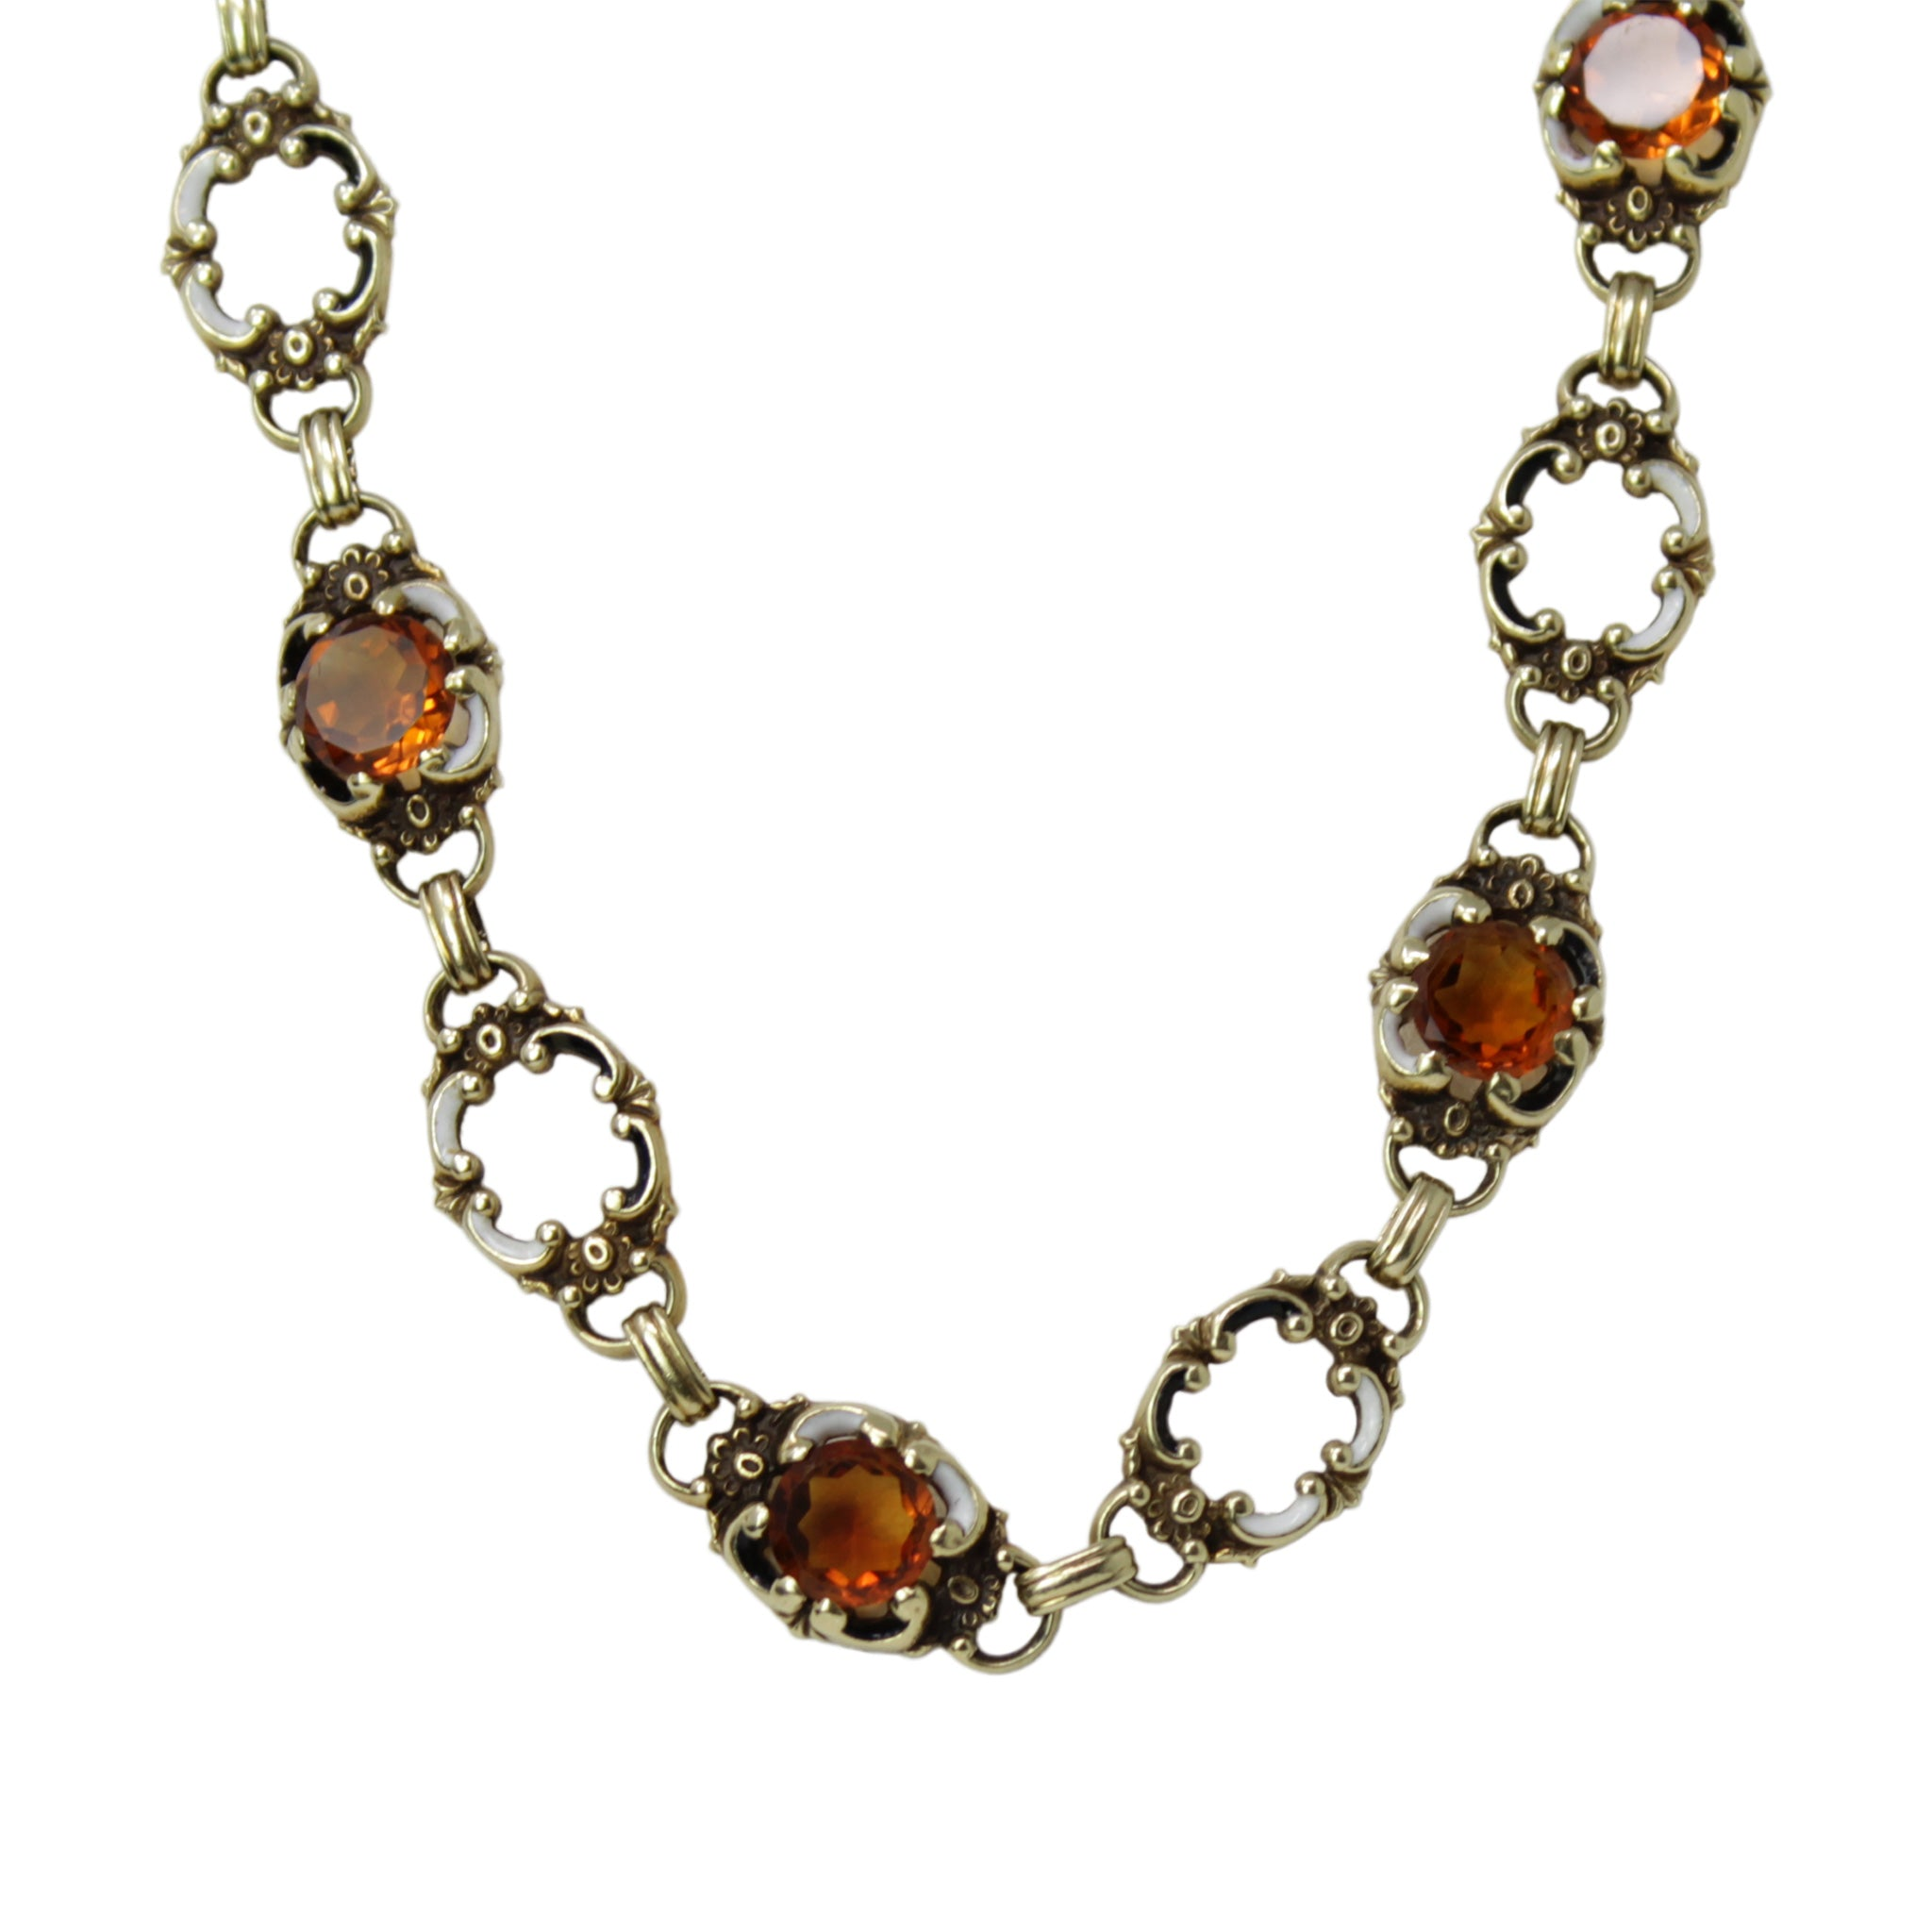 The Art in Her Design - Art Noveau Garnet Long Necklace